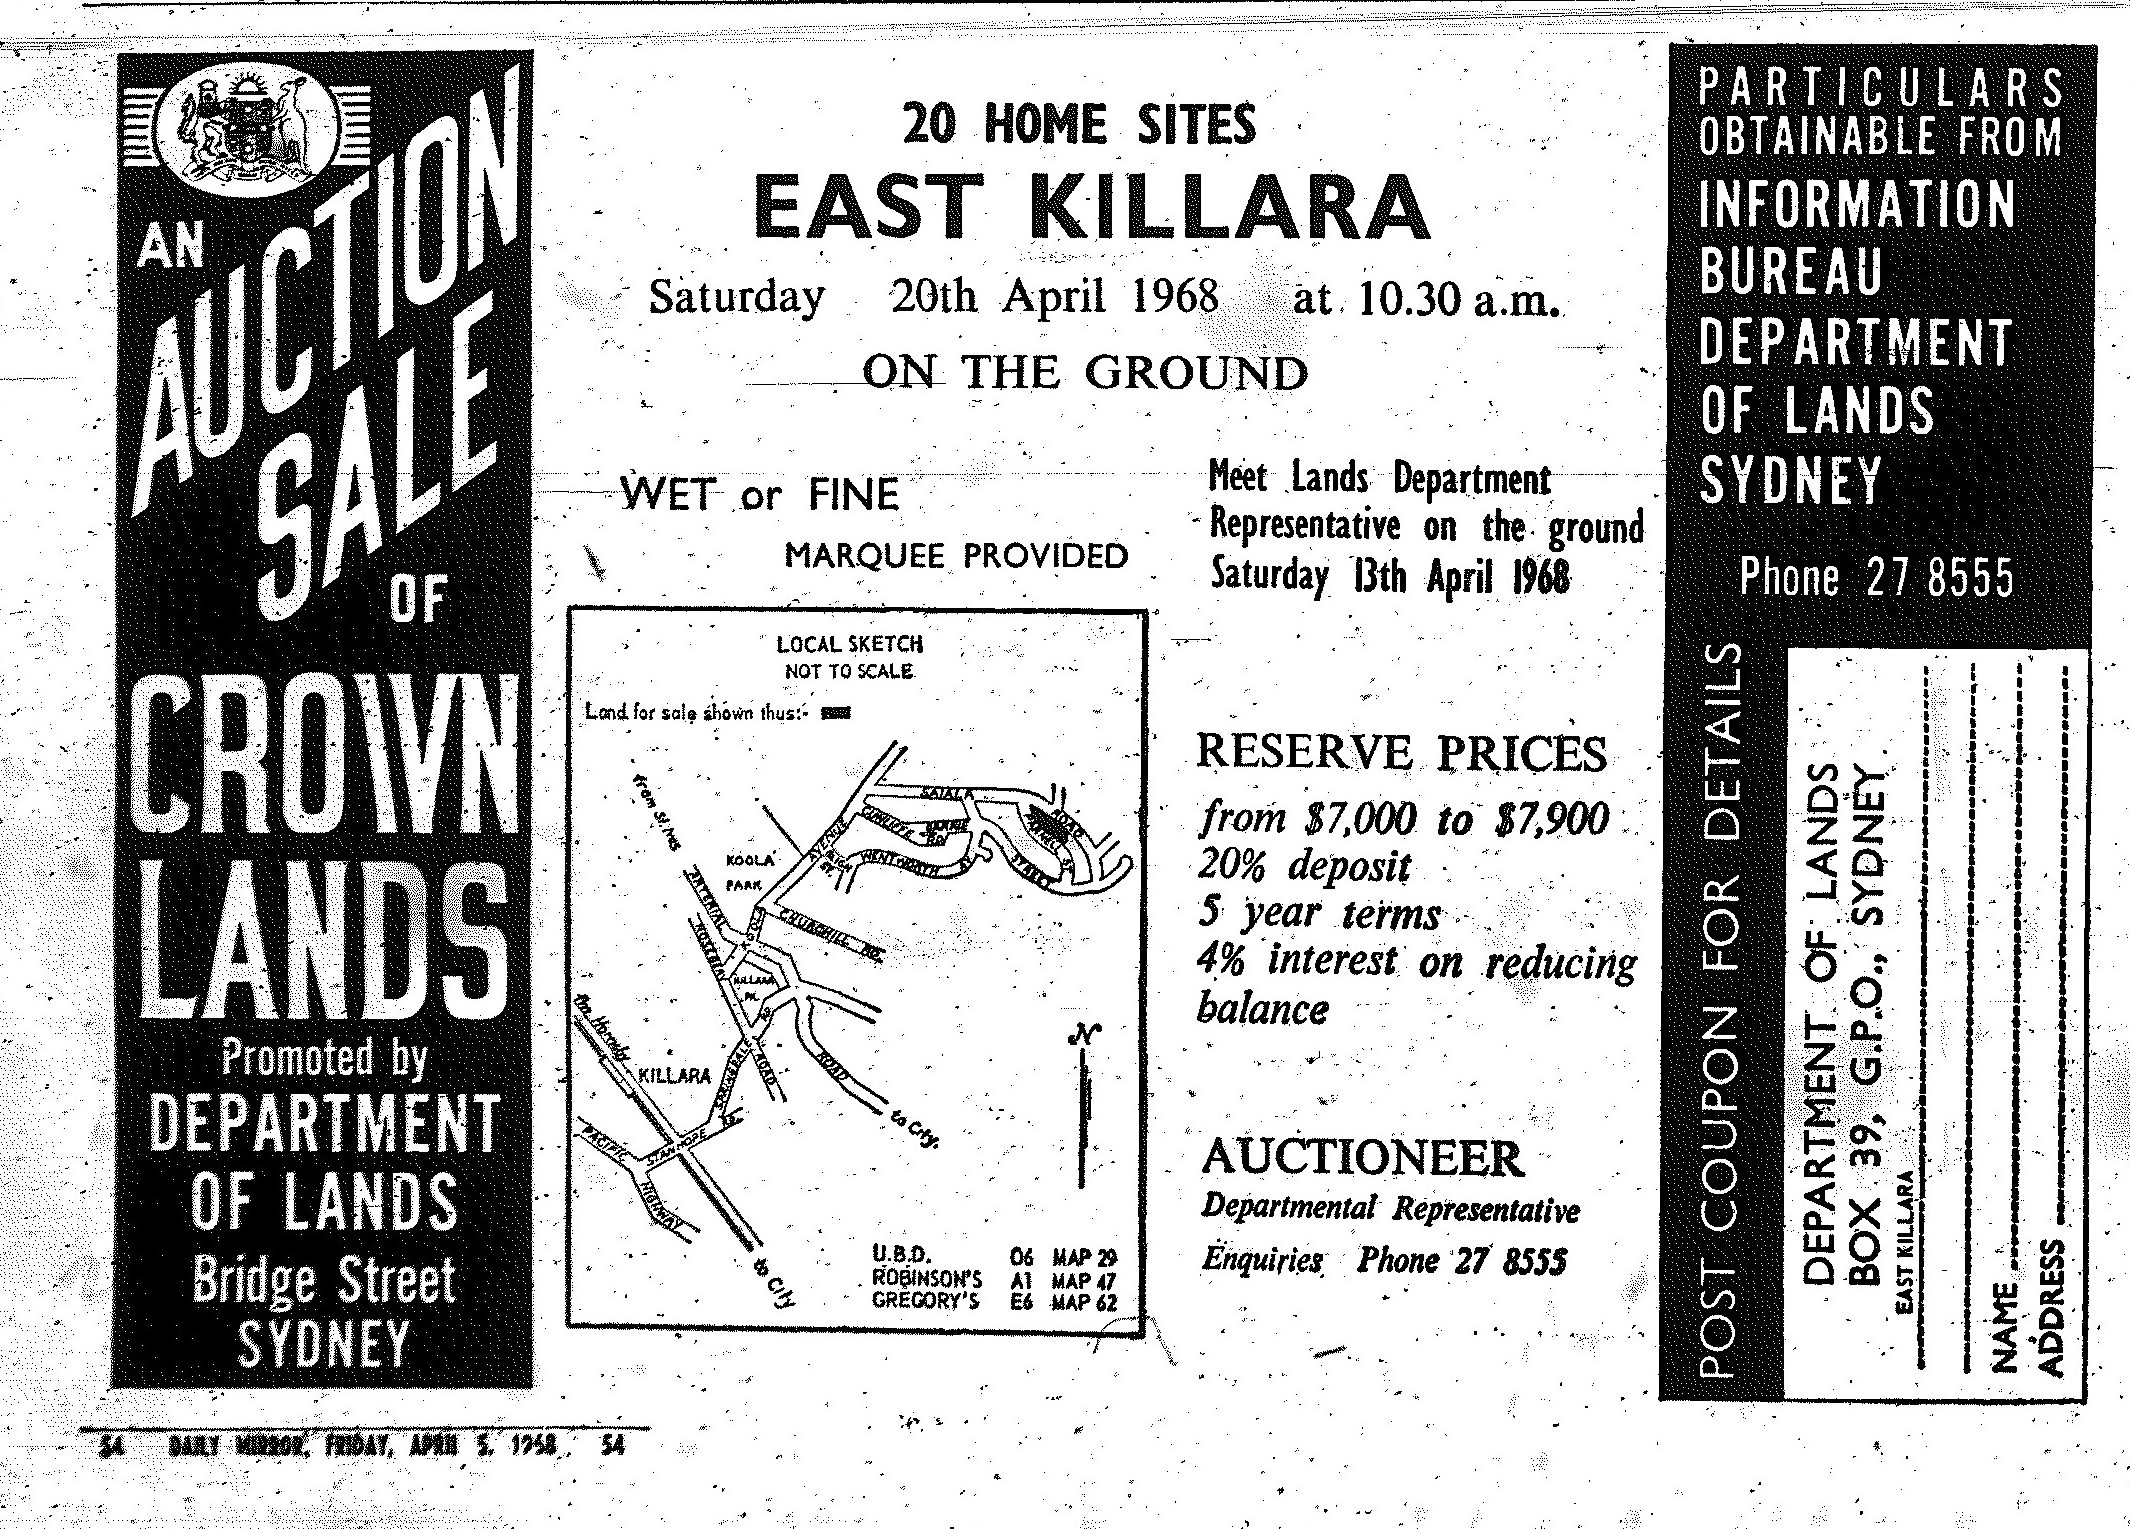 East Killara Ad April 5 1968 daily mirror 55